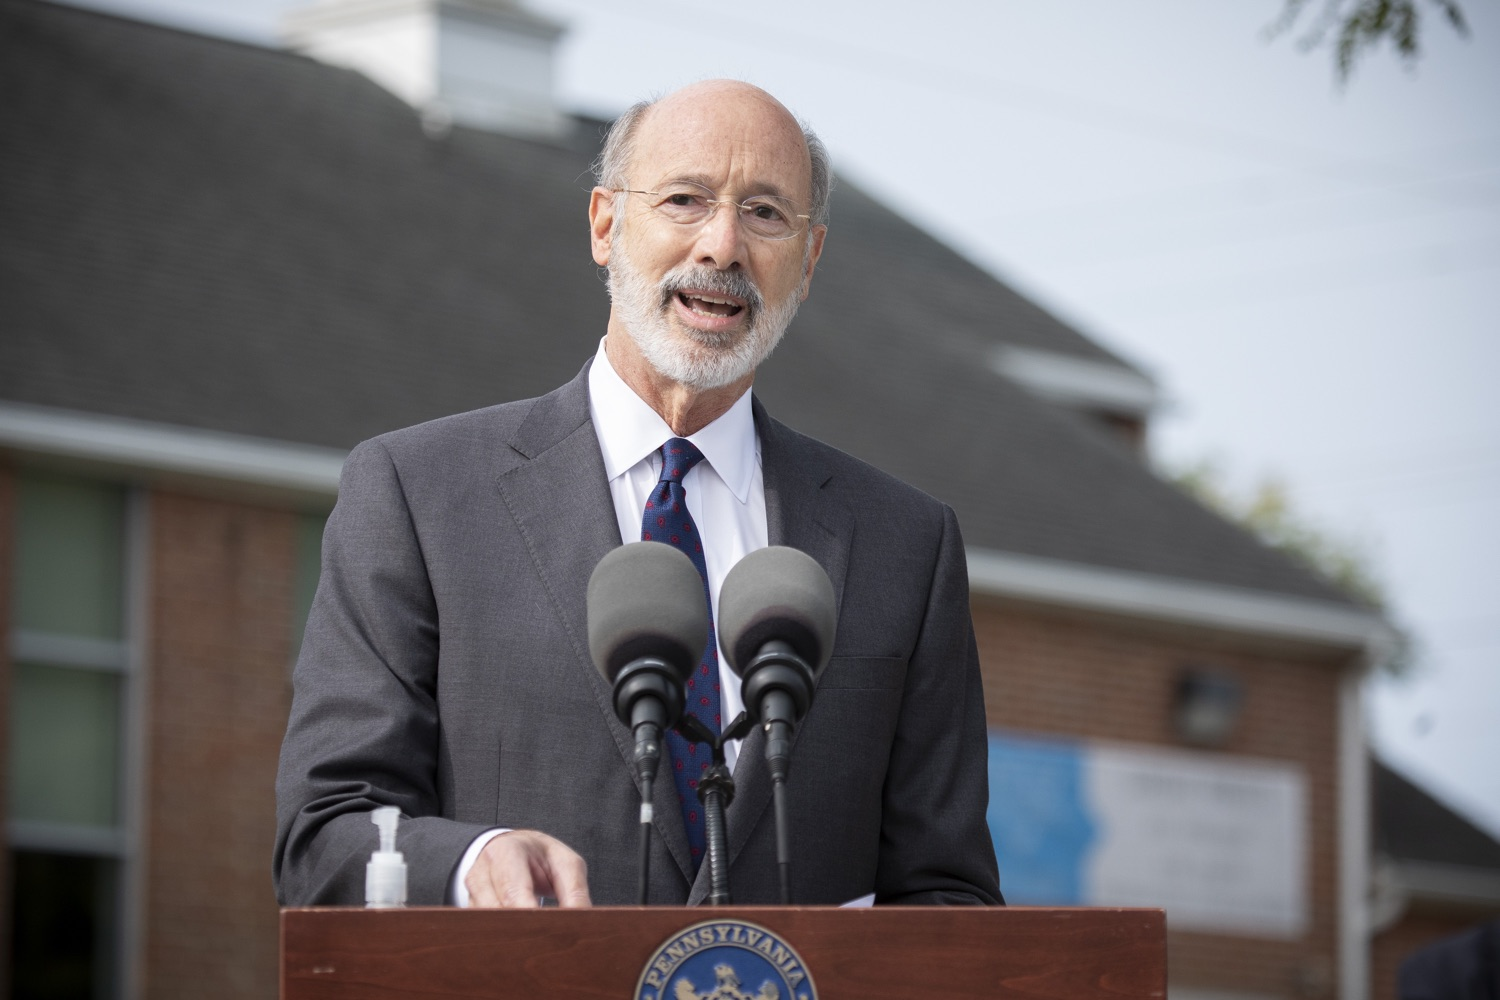 "<a href=""https://filesource.wostreaming.net/commonwealthofpa/photo/18259_gov_electionReform_dz_017.jpg"" target=""_blank"">⇣ Download Photo<br></a>Pennsylvania Governor Tom Wolf speaking to the press.  With only seven weeks left before the Nov. 3 election, Governor Tom Wolf is urging immediate legislative action to ensure voters receive their mail-in ballots early and give counties more time to process and count ballots before election day. The governor also reassured Pennsylvanians that in-person voting is safe, and all eligible votes will be counted. SEPTEMBER 14, 2020 - YORK, PA."